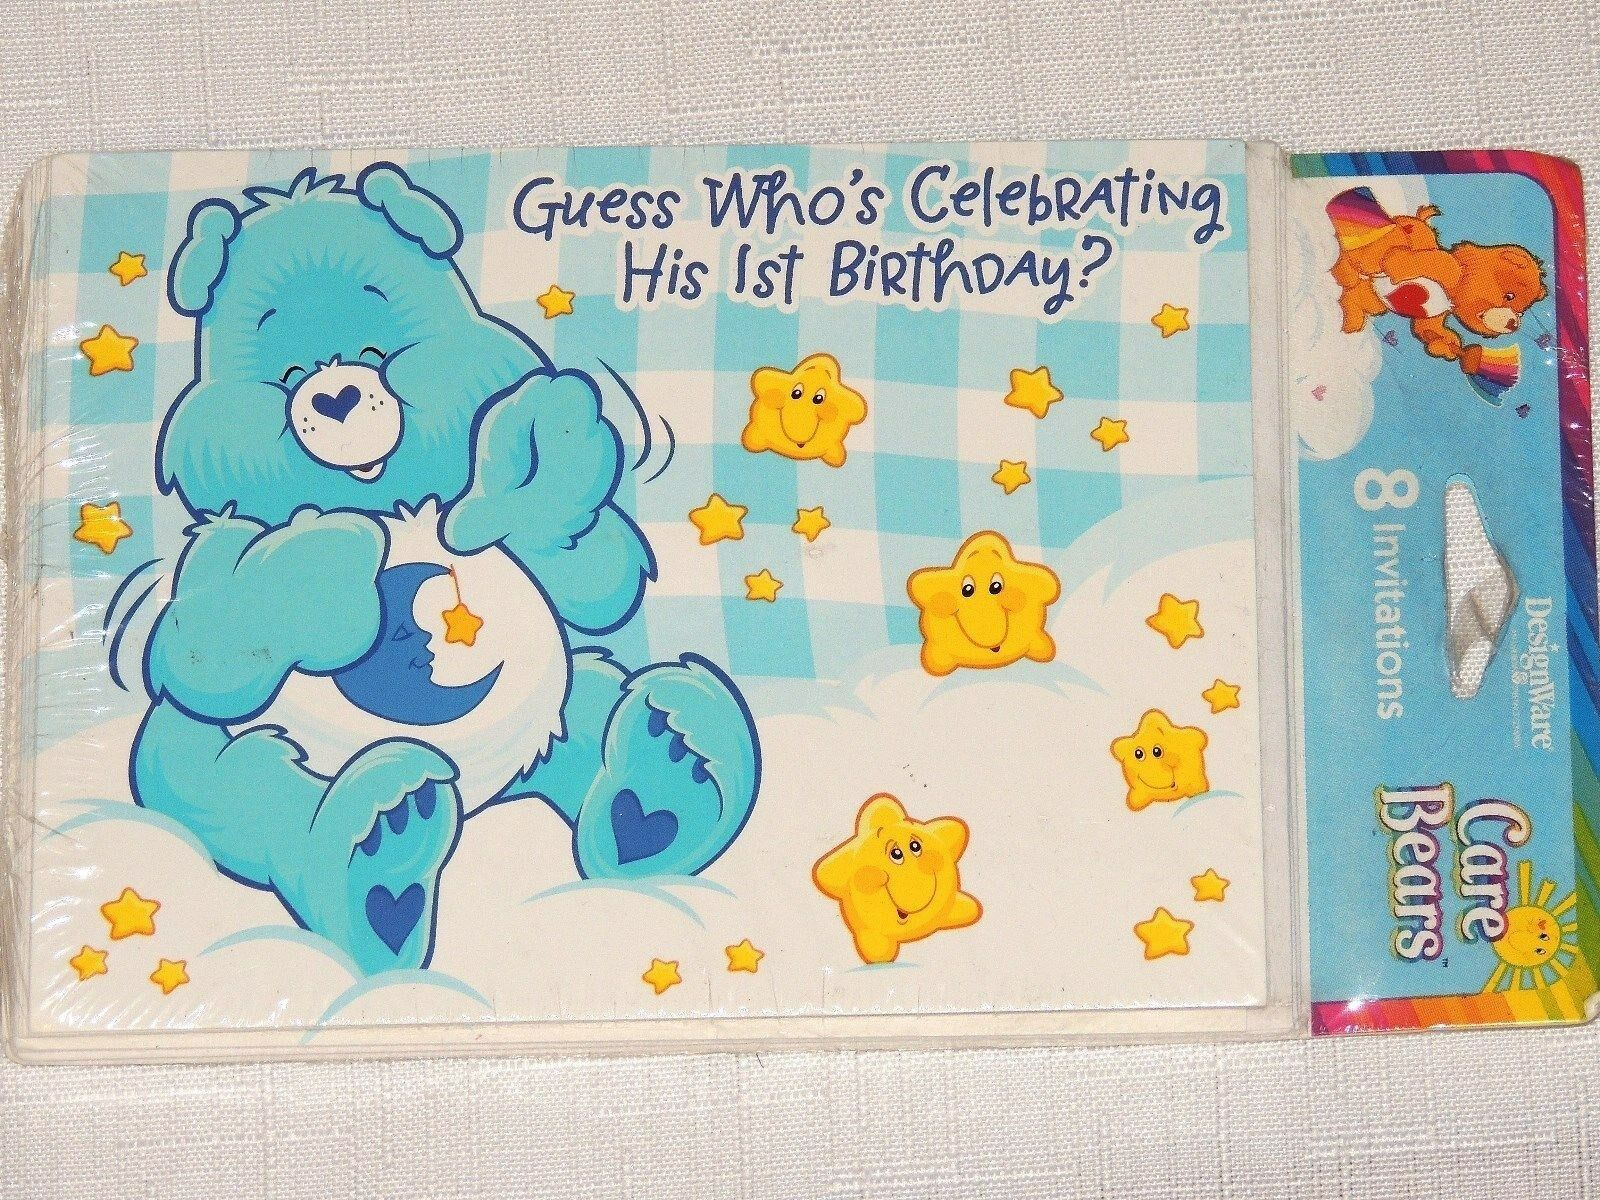 8 care bears boy 1st first birthday invitations party supplies picture 1 of 1 monicamarmolfo Choice Image